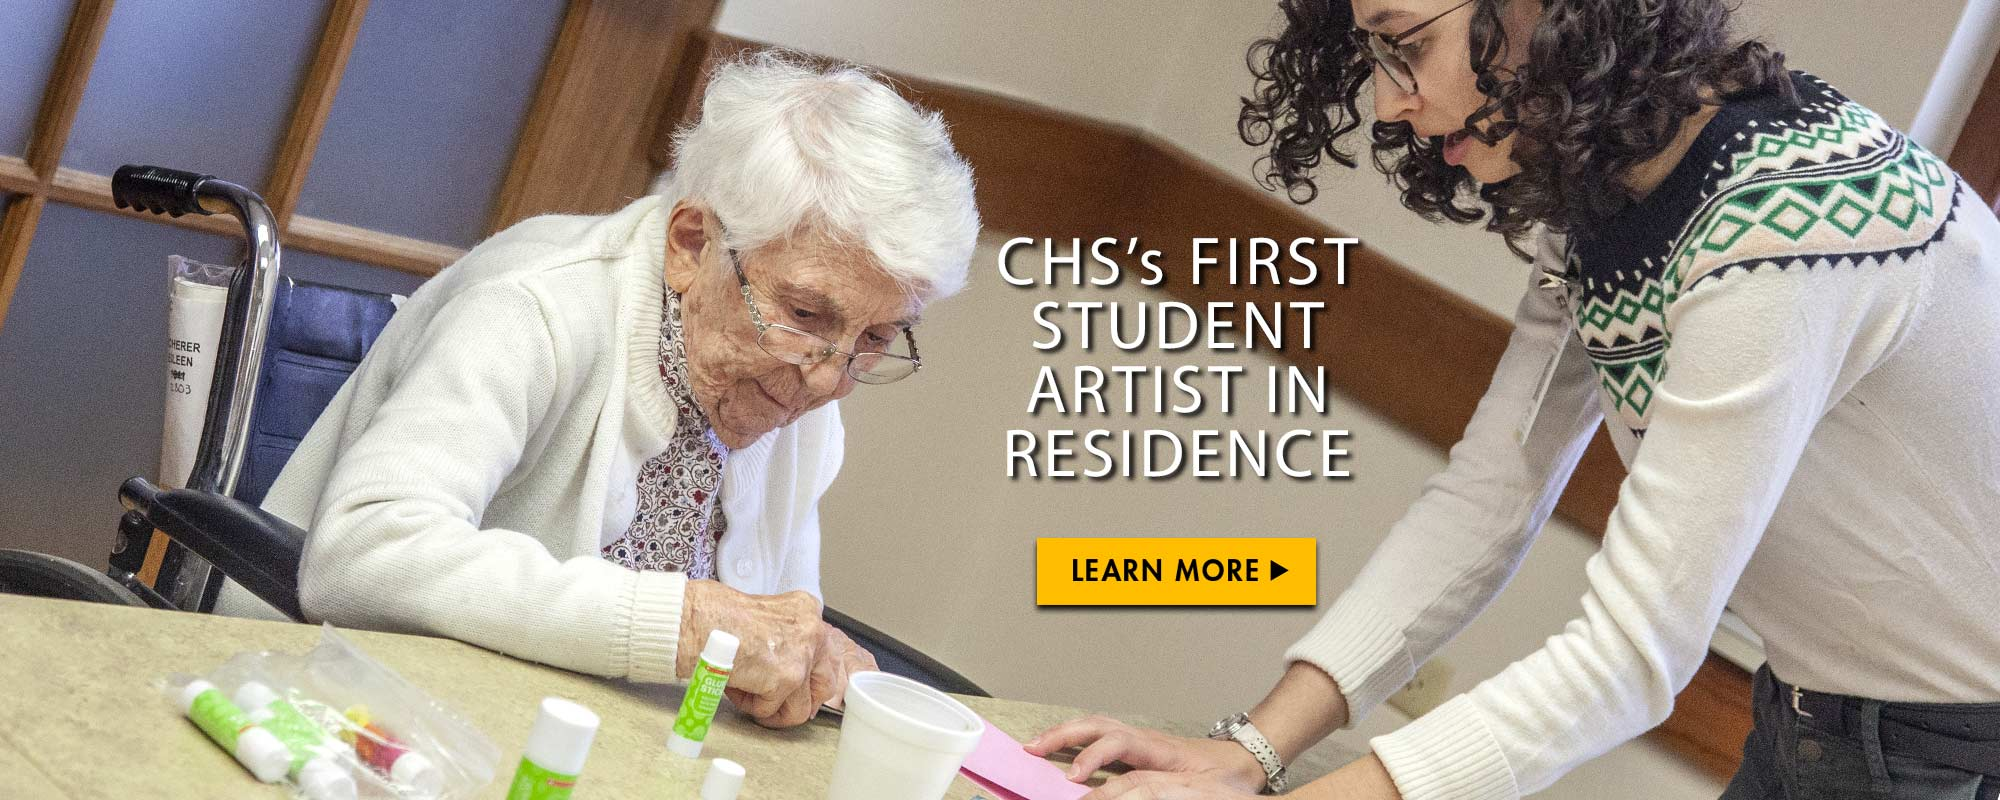 CHS's first student artist in residence. Learn more.